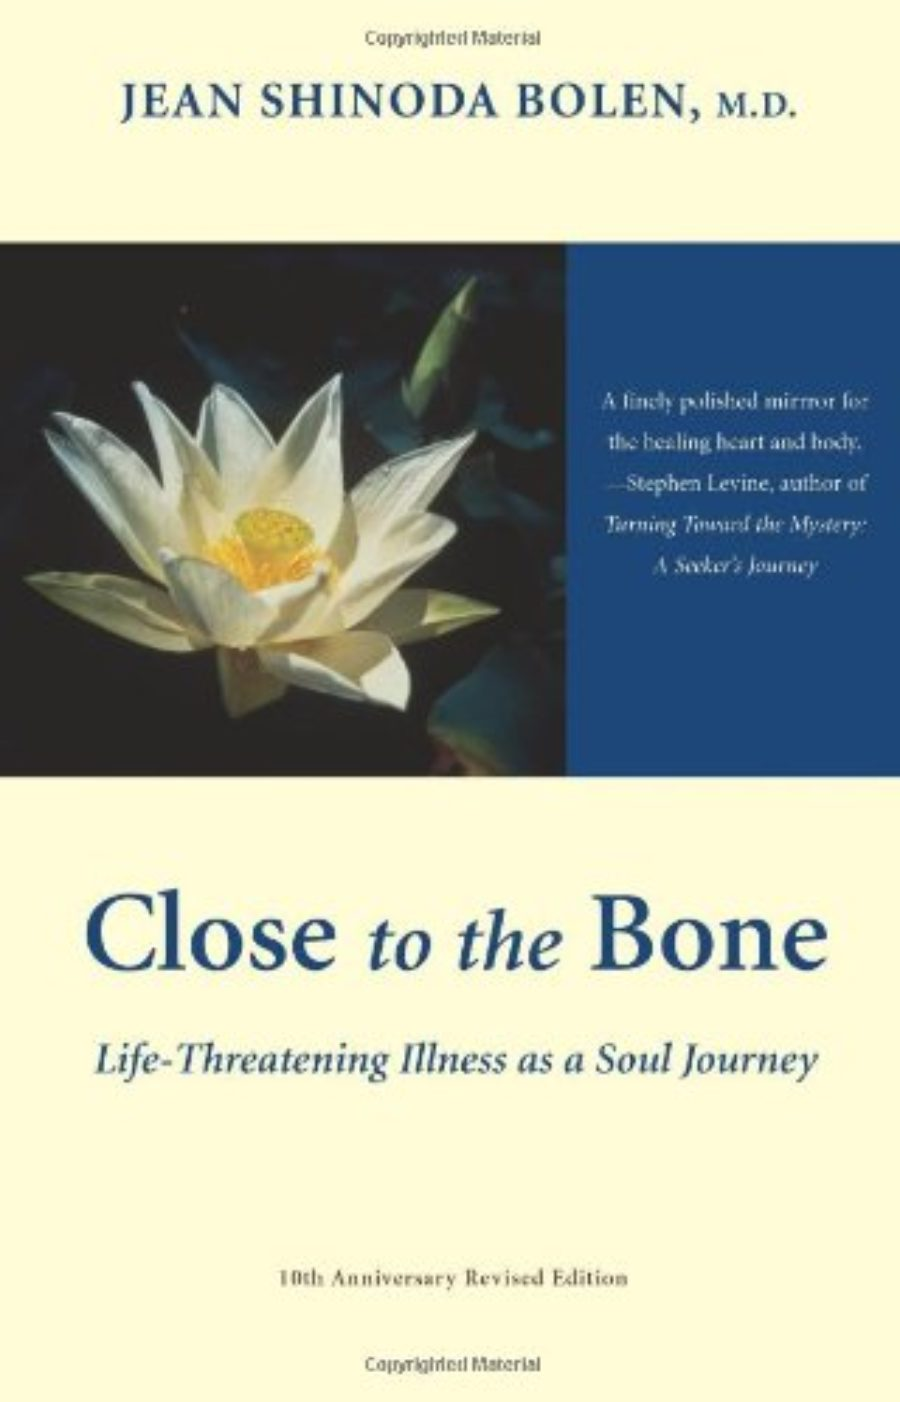 Cover of Close to the Bone: Life-Threatening Illness As a Soul Journey